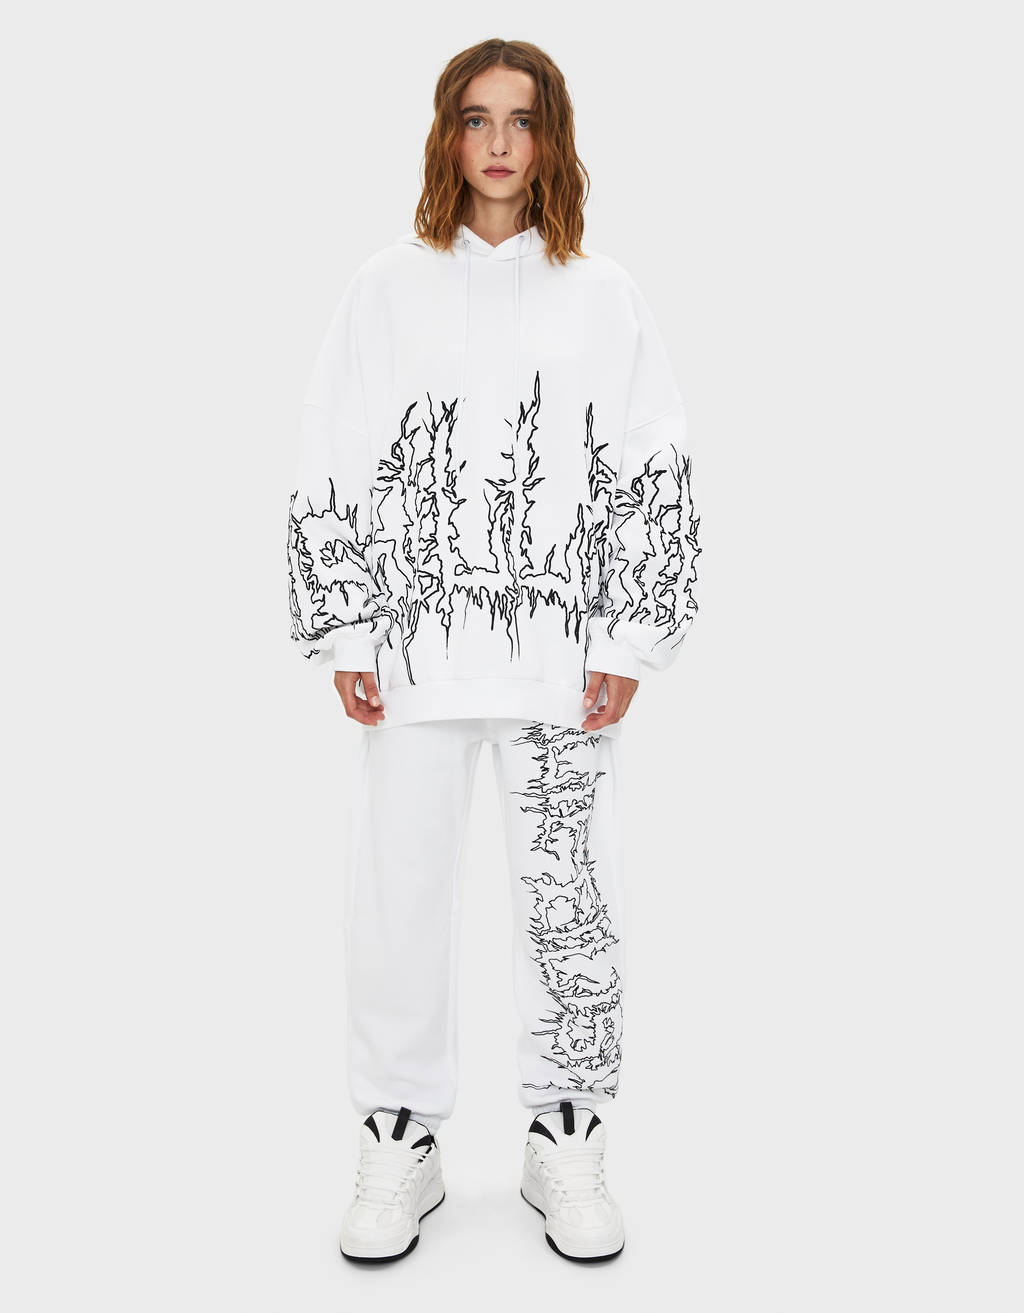 Billie Eilish x Bershka jogger